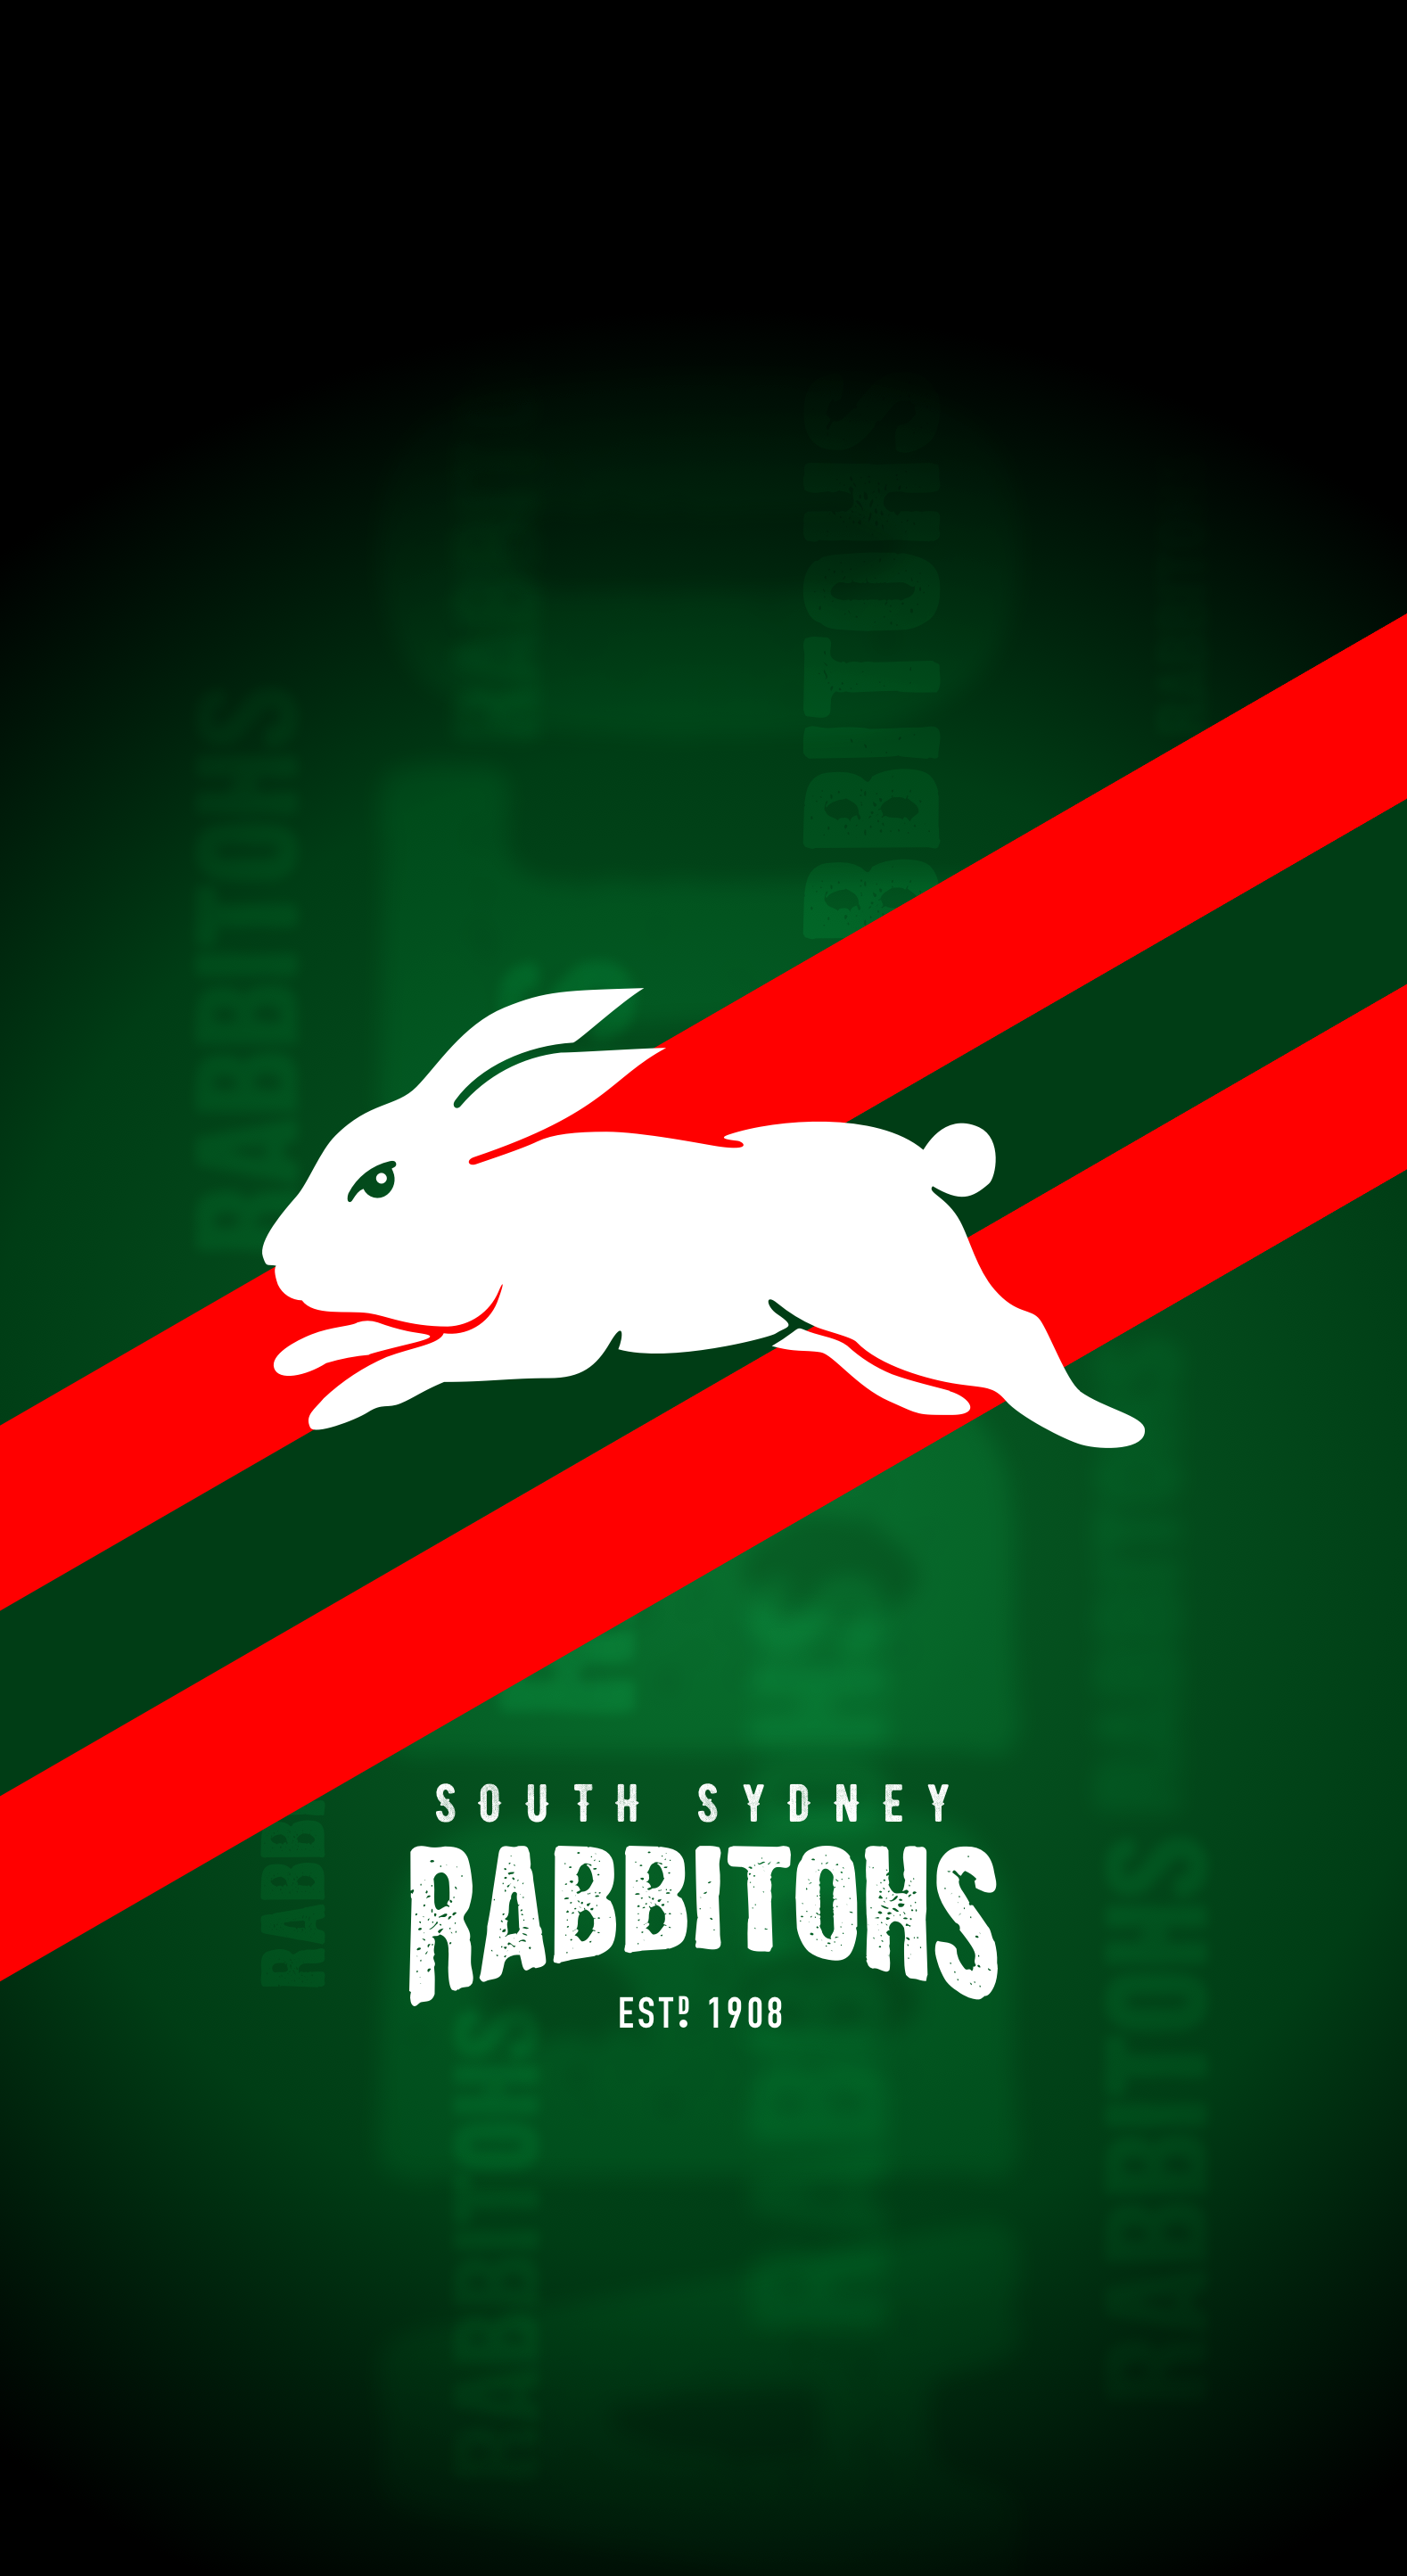 All Sizes South Sydney Rabbitohs Iphone X Lock Screen Wallpaper Flickr Photo Sharing Australia Wallpaper Screen Wallpaper Lock Screen Wallpaper